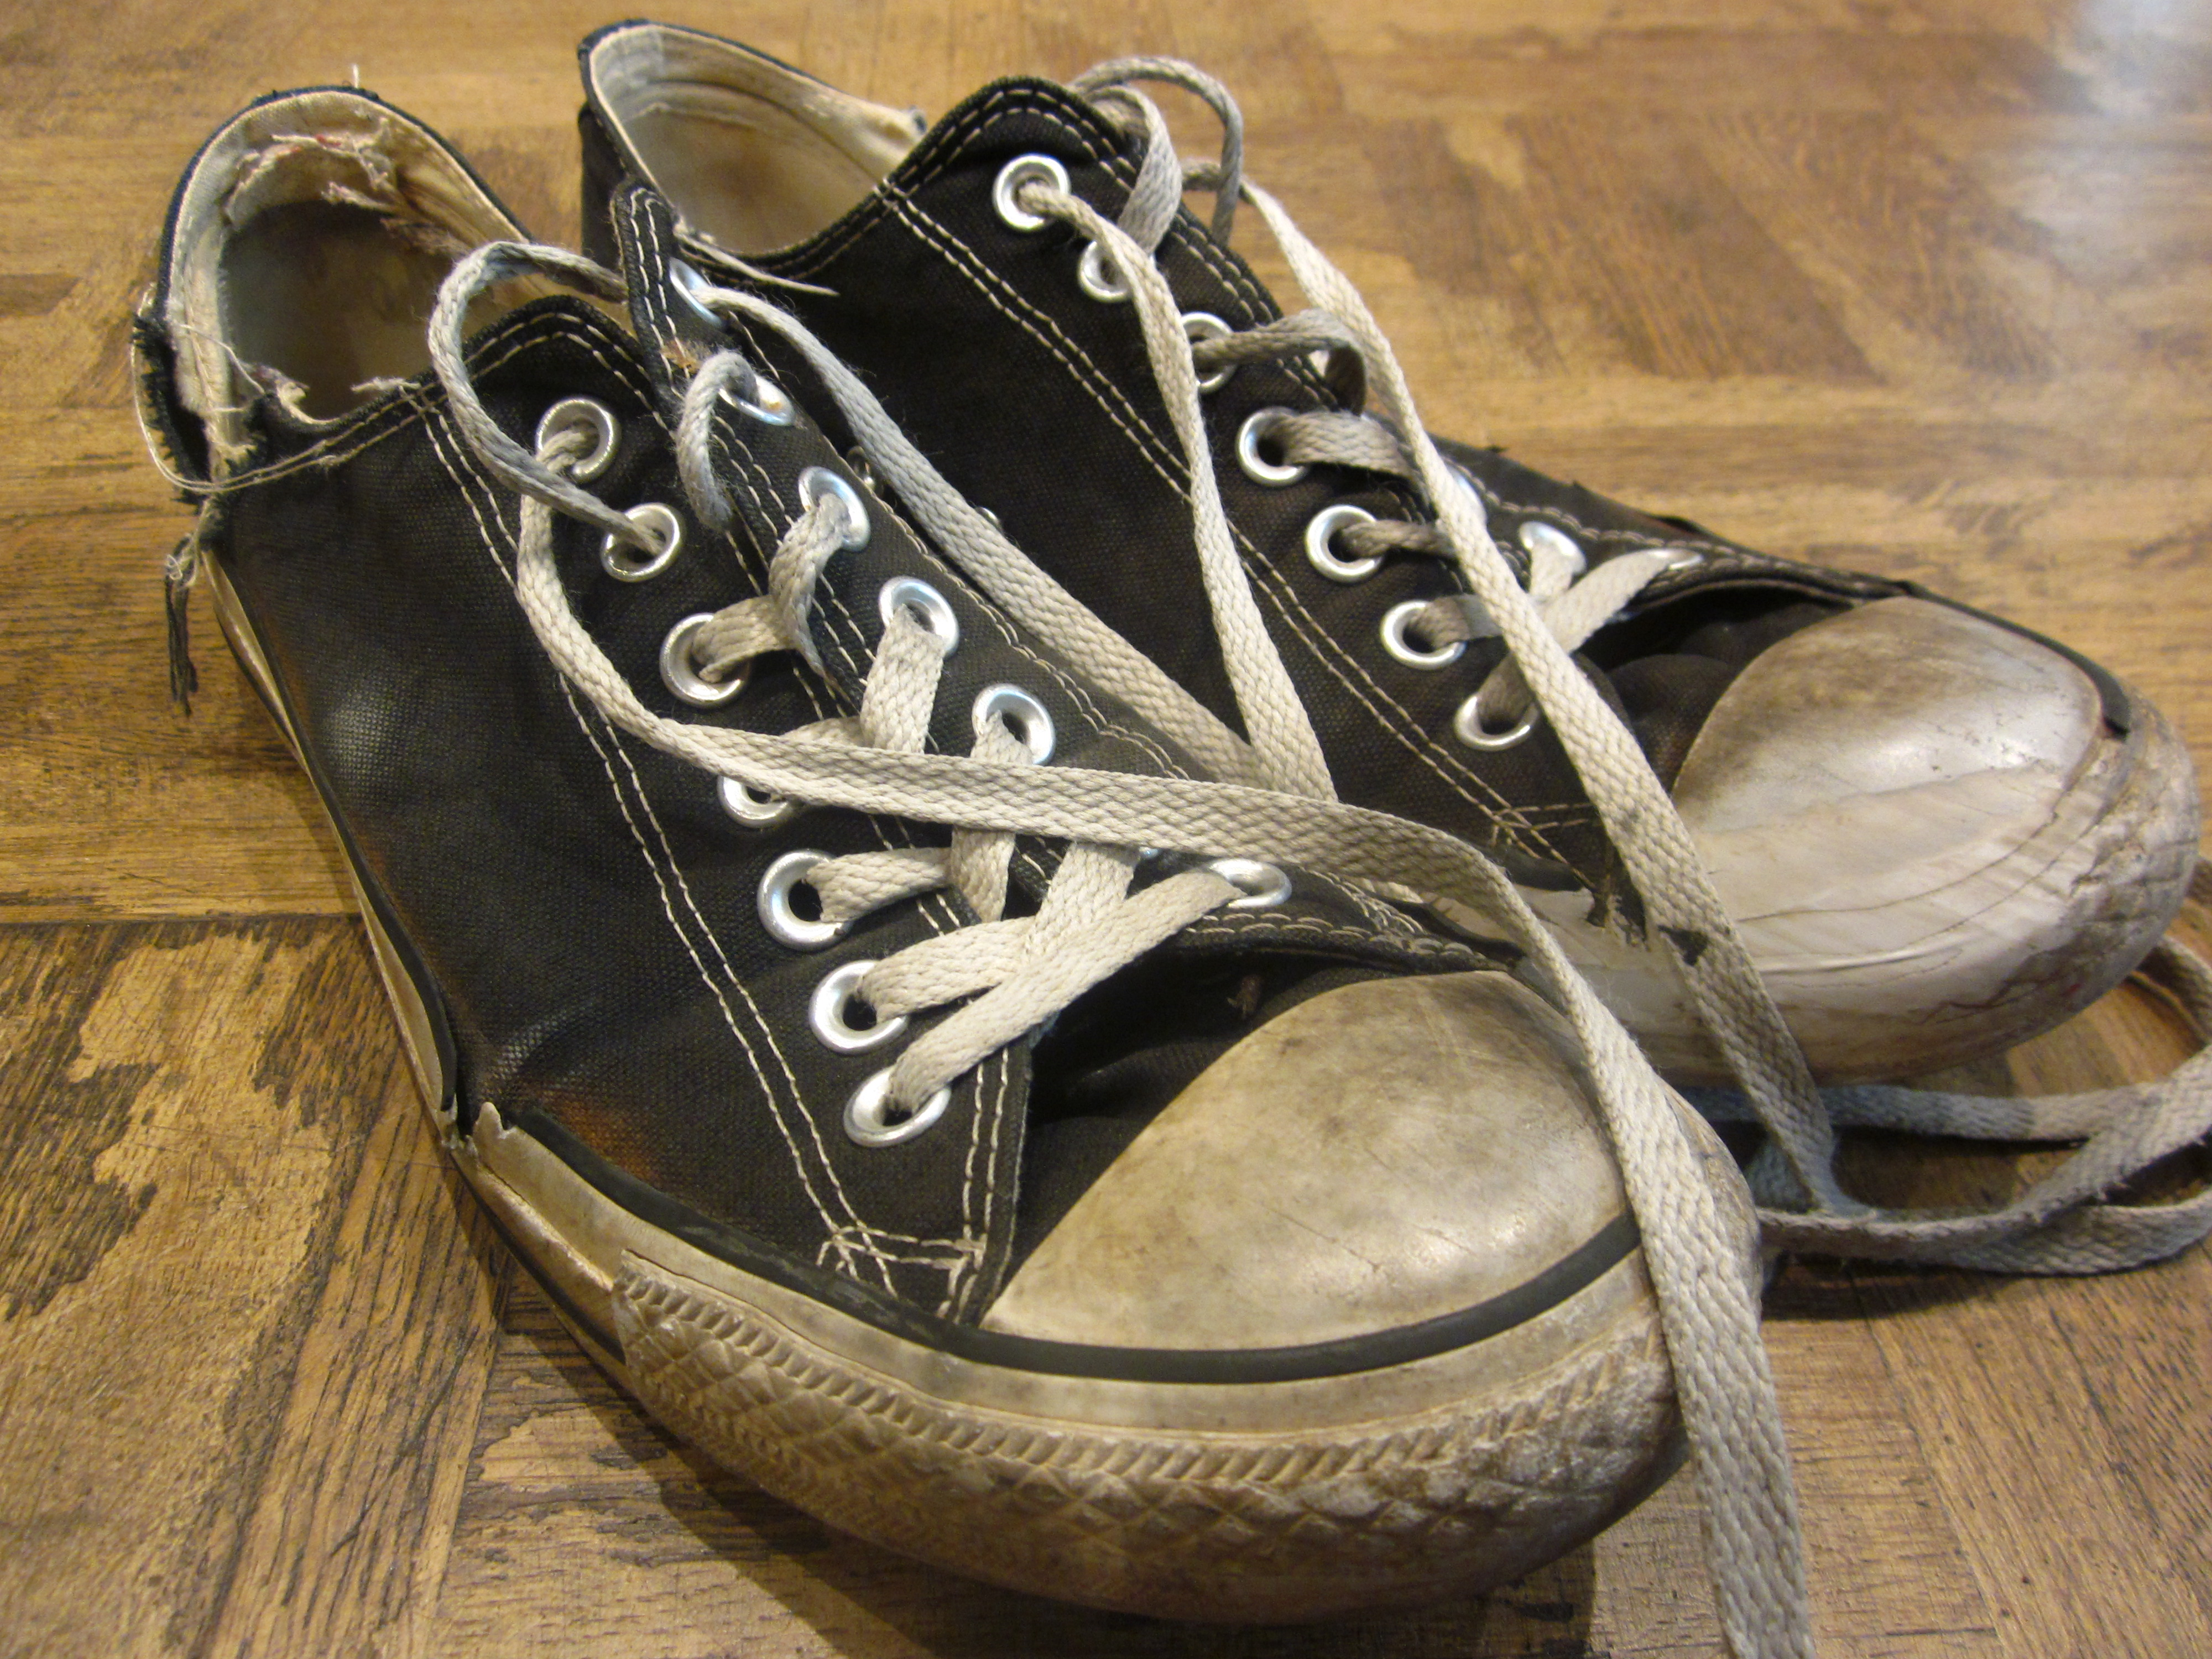 Old Converse Sneakers Flickr